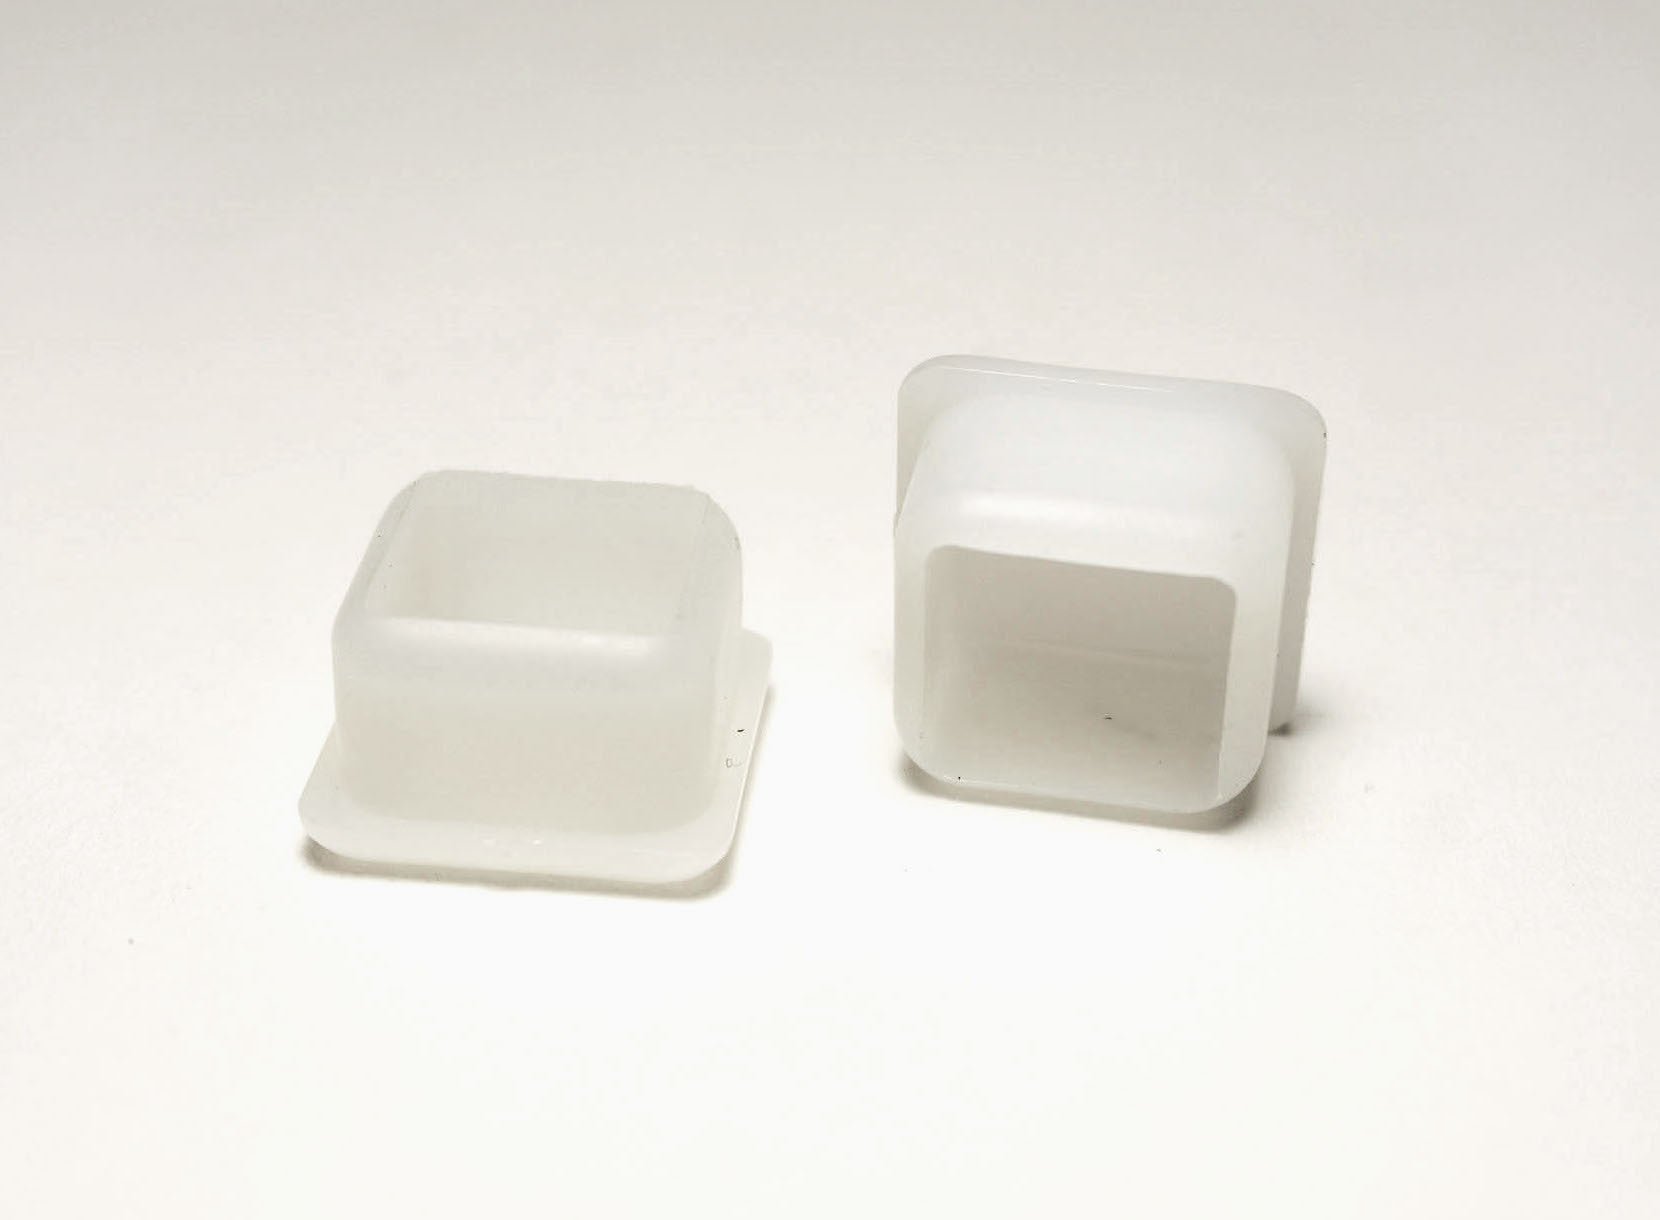 13/16  Square Glide/Insert | White | Item 30-605 & 13/16